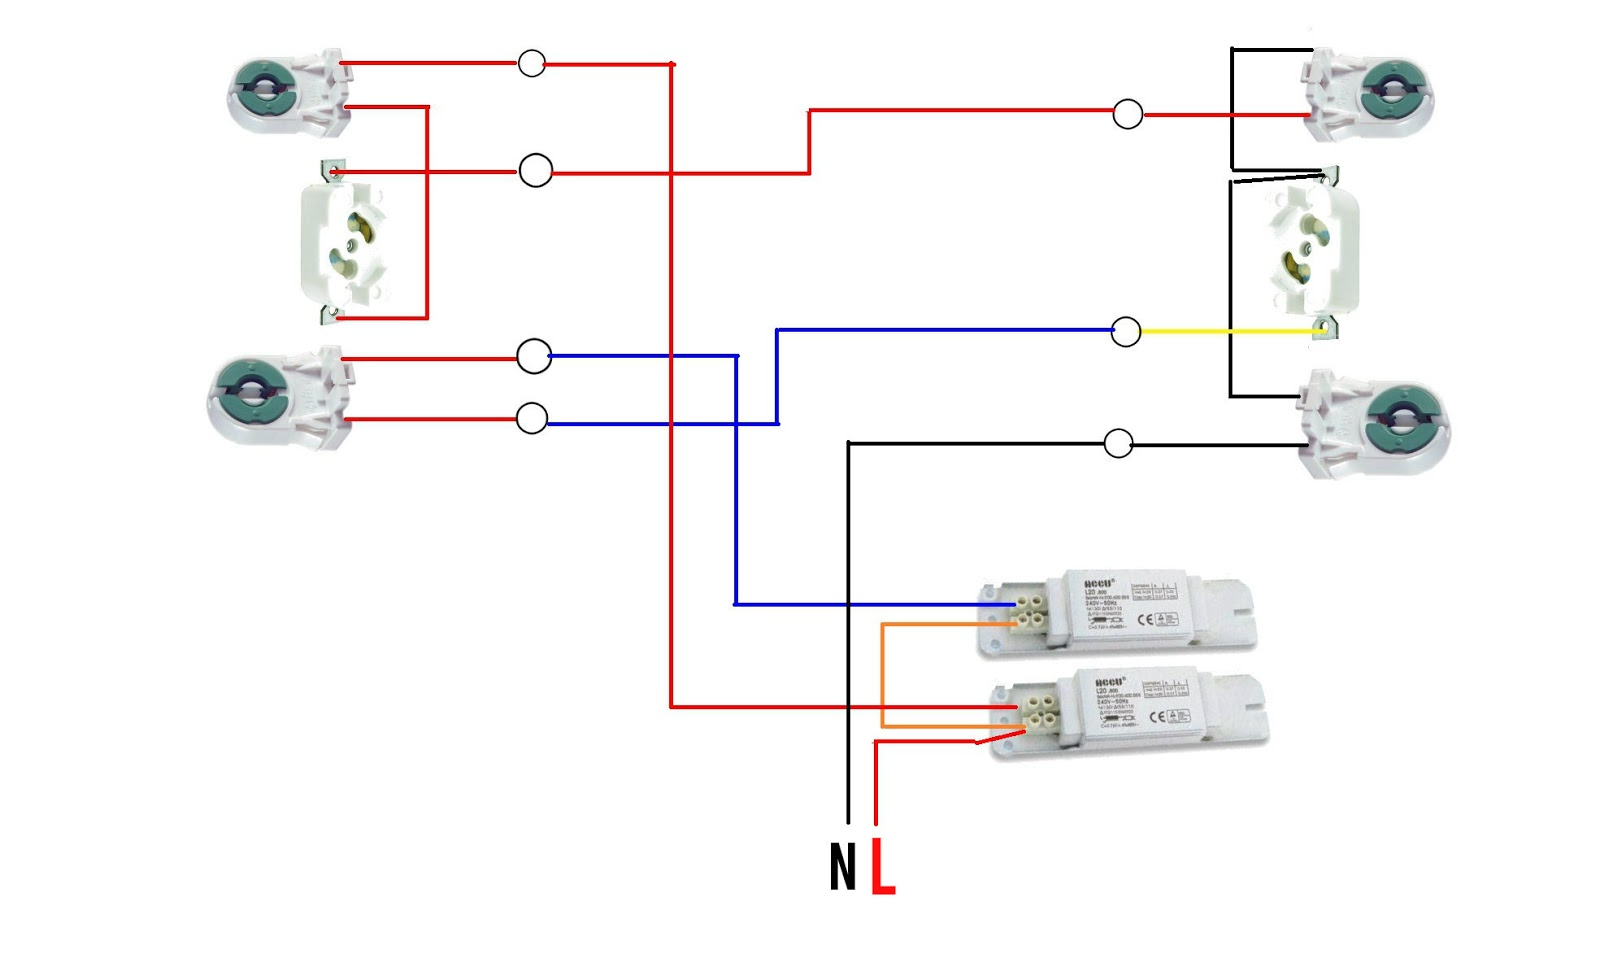 Fluorescent Ballast Wiring Diagram Ceiling Fan 3 Way Switch The World Through Electricity Double Light